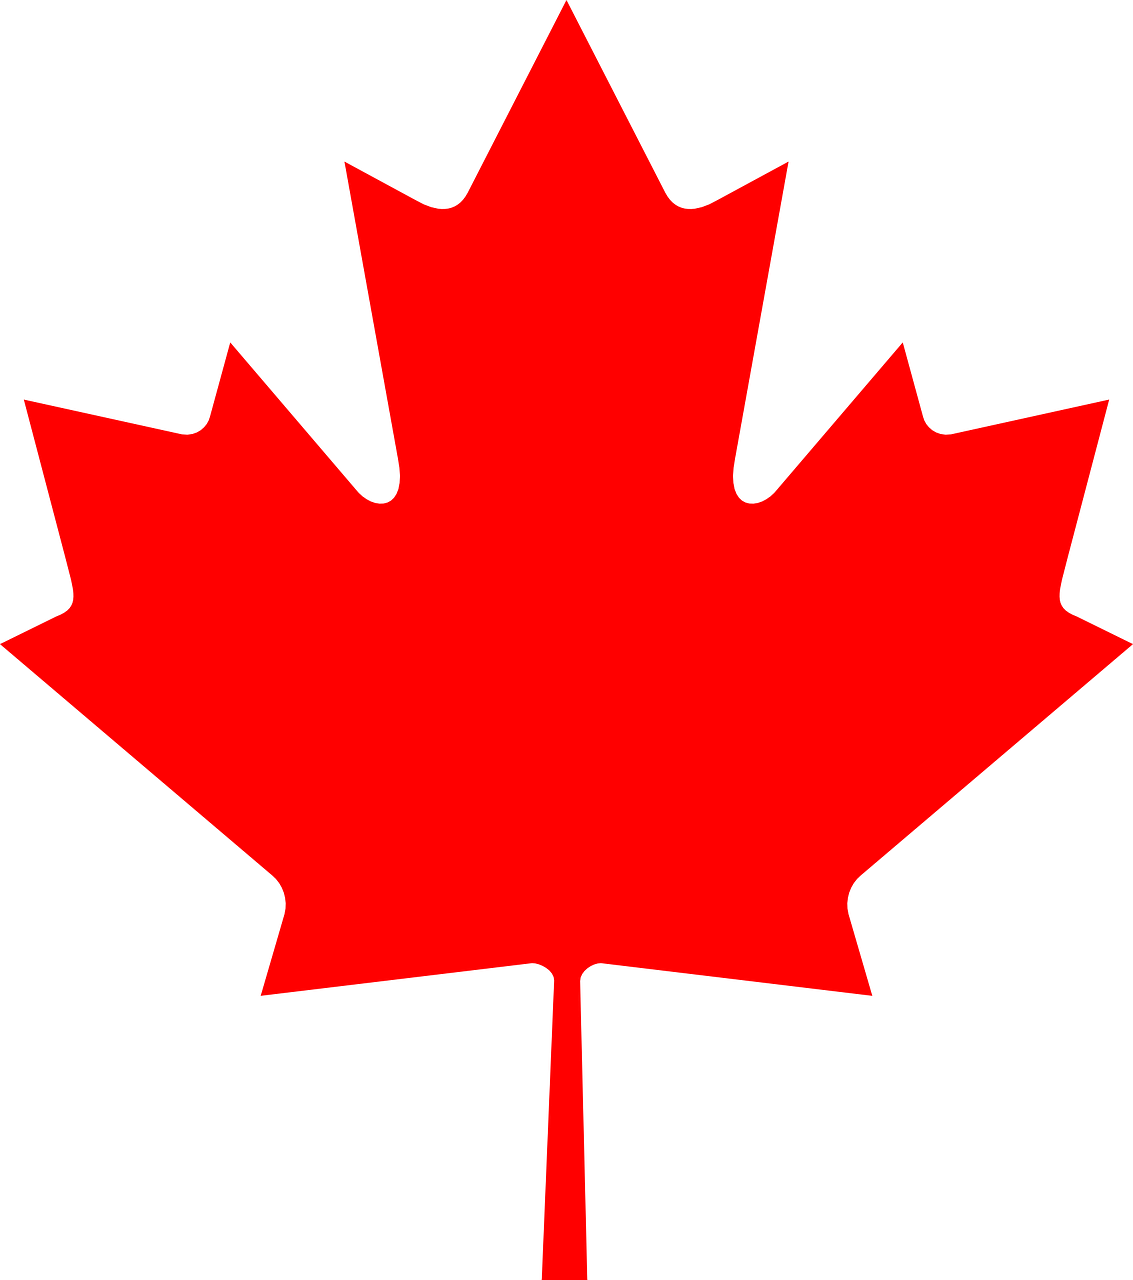 maple leaf canada canadian free photo